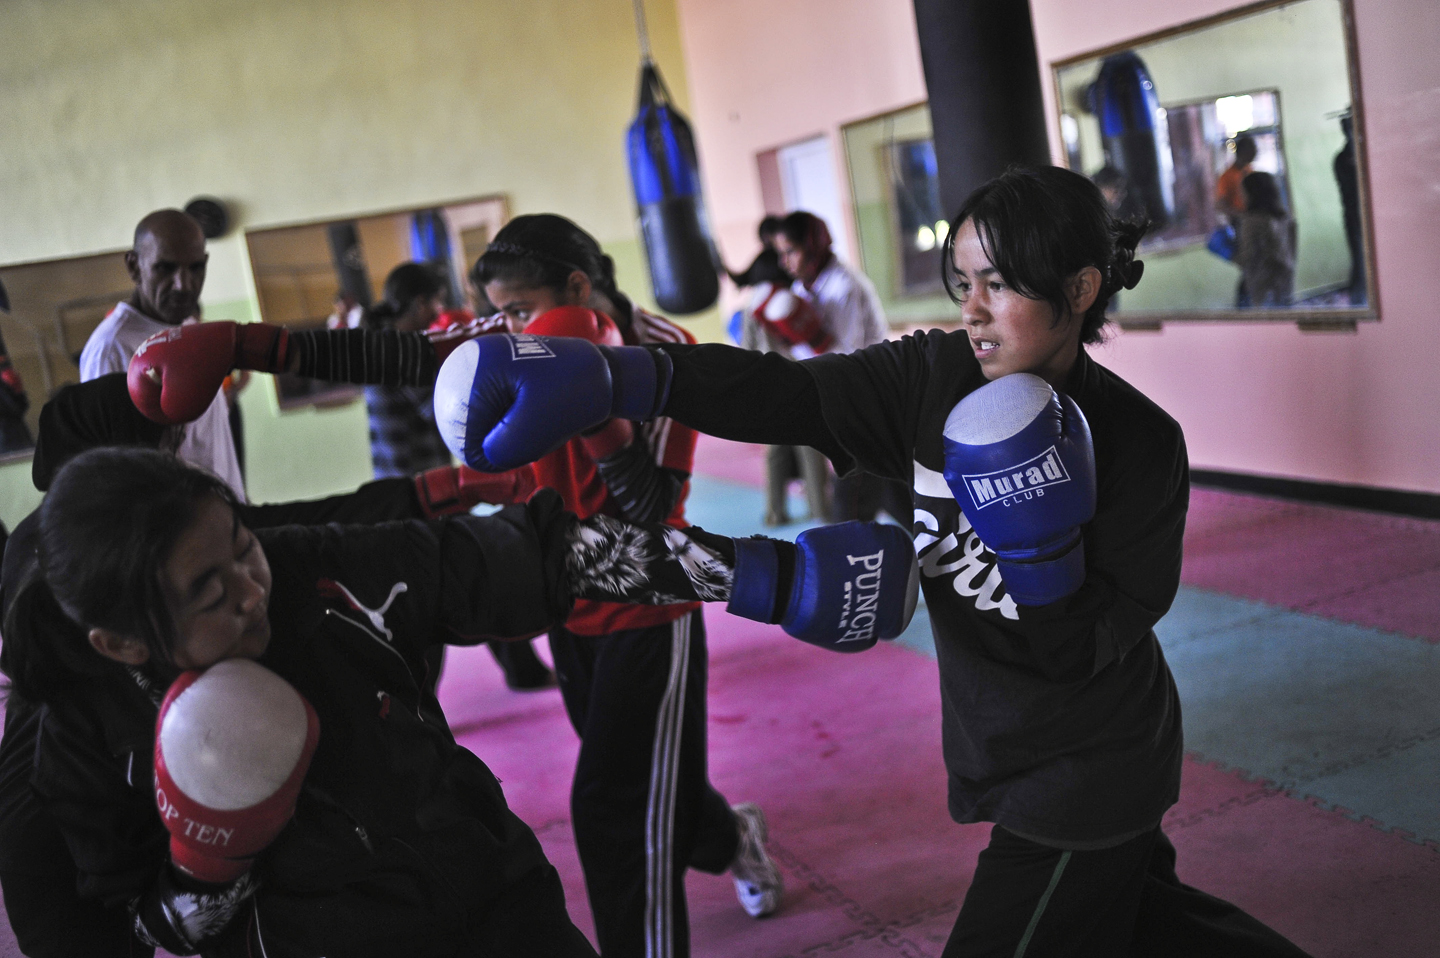 These young Afghan women are part of a team that will compete at the 2012 Summer Olympic Games in London, where women's boxing will debut as an official sport. The athletes triumphed just by getting their families to sign on to the idea of their daughters participating in sports. During matches in public venues, the members of the Oxfam-supported team, now competing in South Asia, cover their hair with hijab worn beneath their head guards. That's not a problem for the International Boxing Association, as long as the boxer's face is clearly visible. Here, practicing indoors in Kabul, they can go bareheaded.